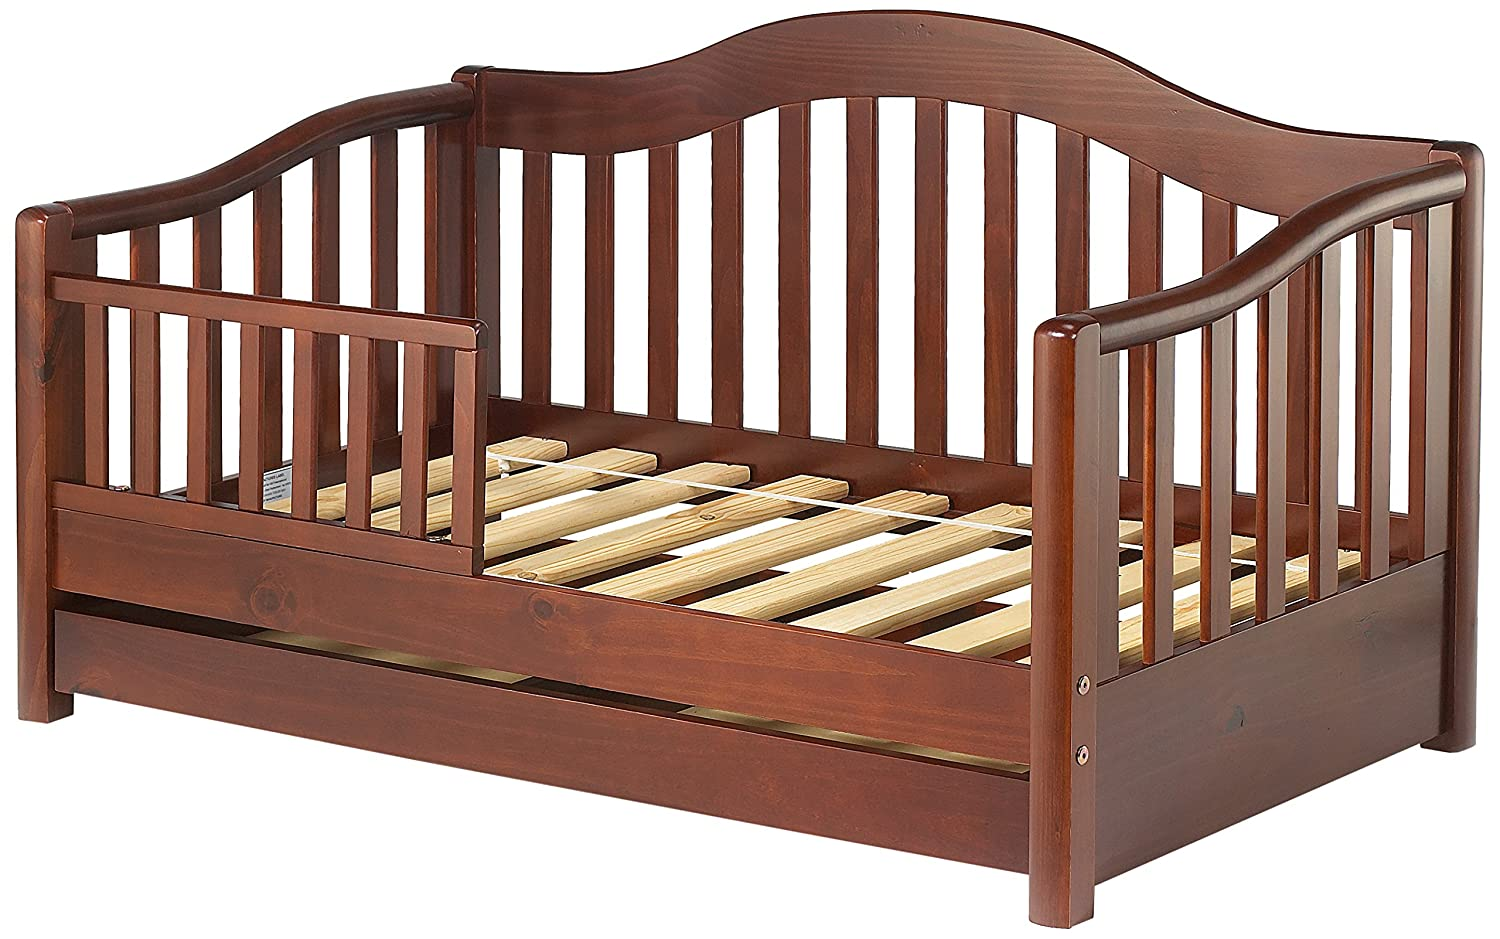 uk the kitchen bed gruffalo dp amazon by hellohome co toddler home kids with storage underbed